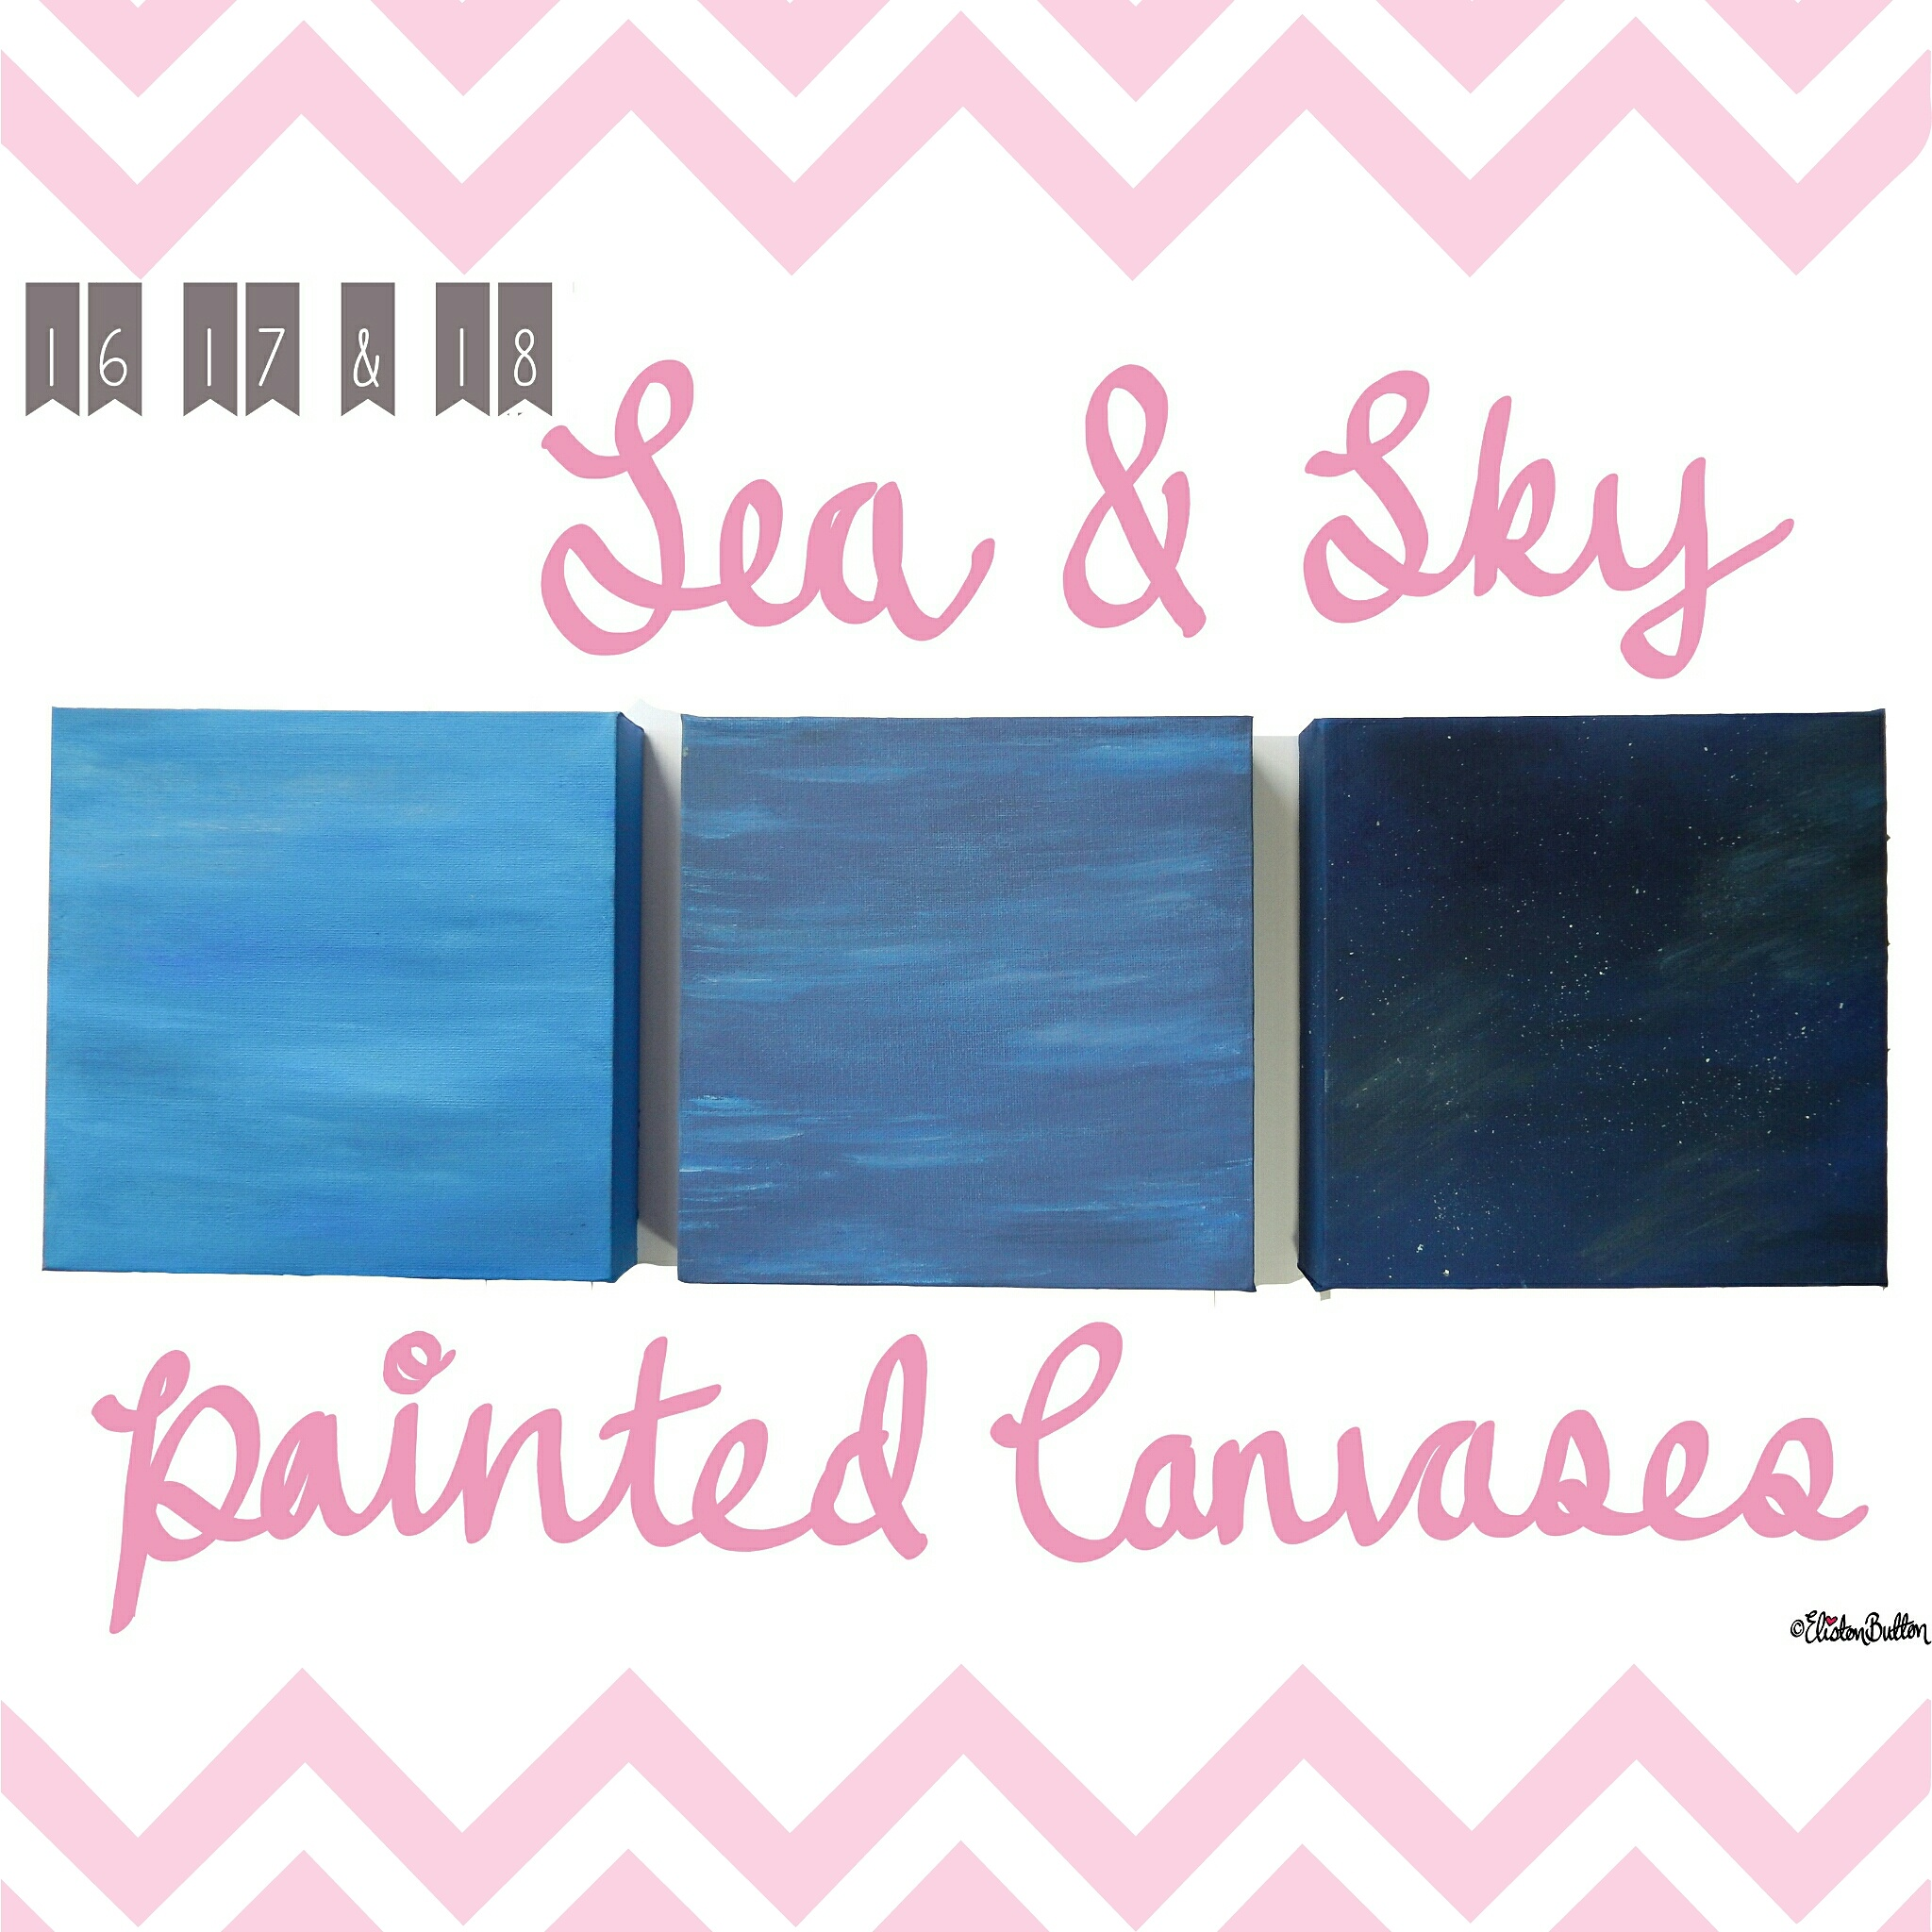 Sea and Sky Painted Canvases - Create 28 - I Did It! (a.k.a. My Therapy Session) at www.elistonbutton.com - Eliston Button - That Crafty Kid – Art, Design, Craft & Adventure.